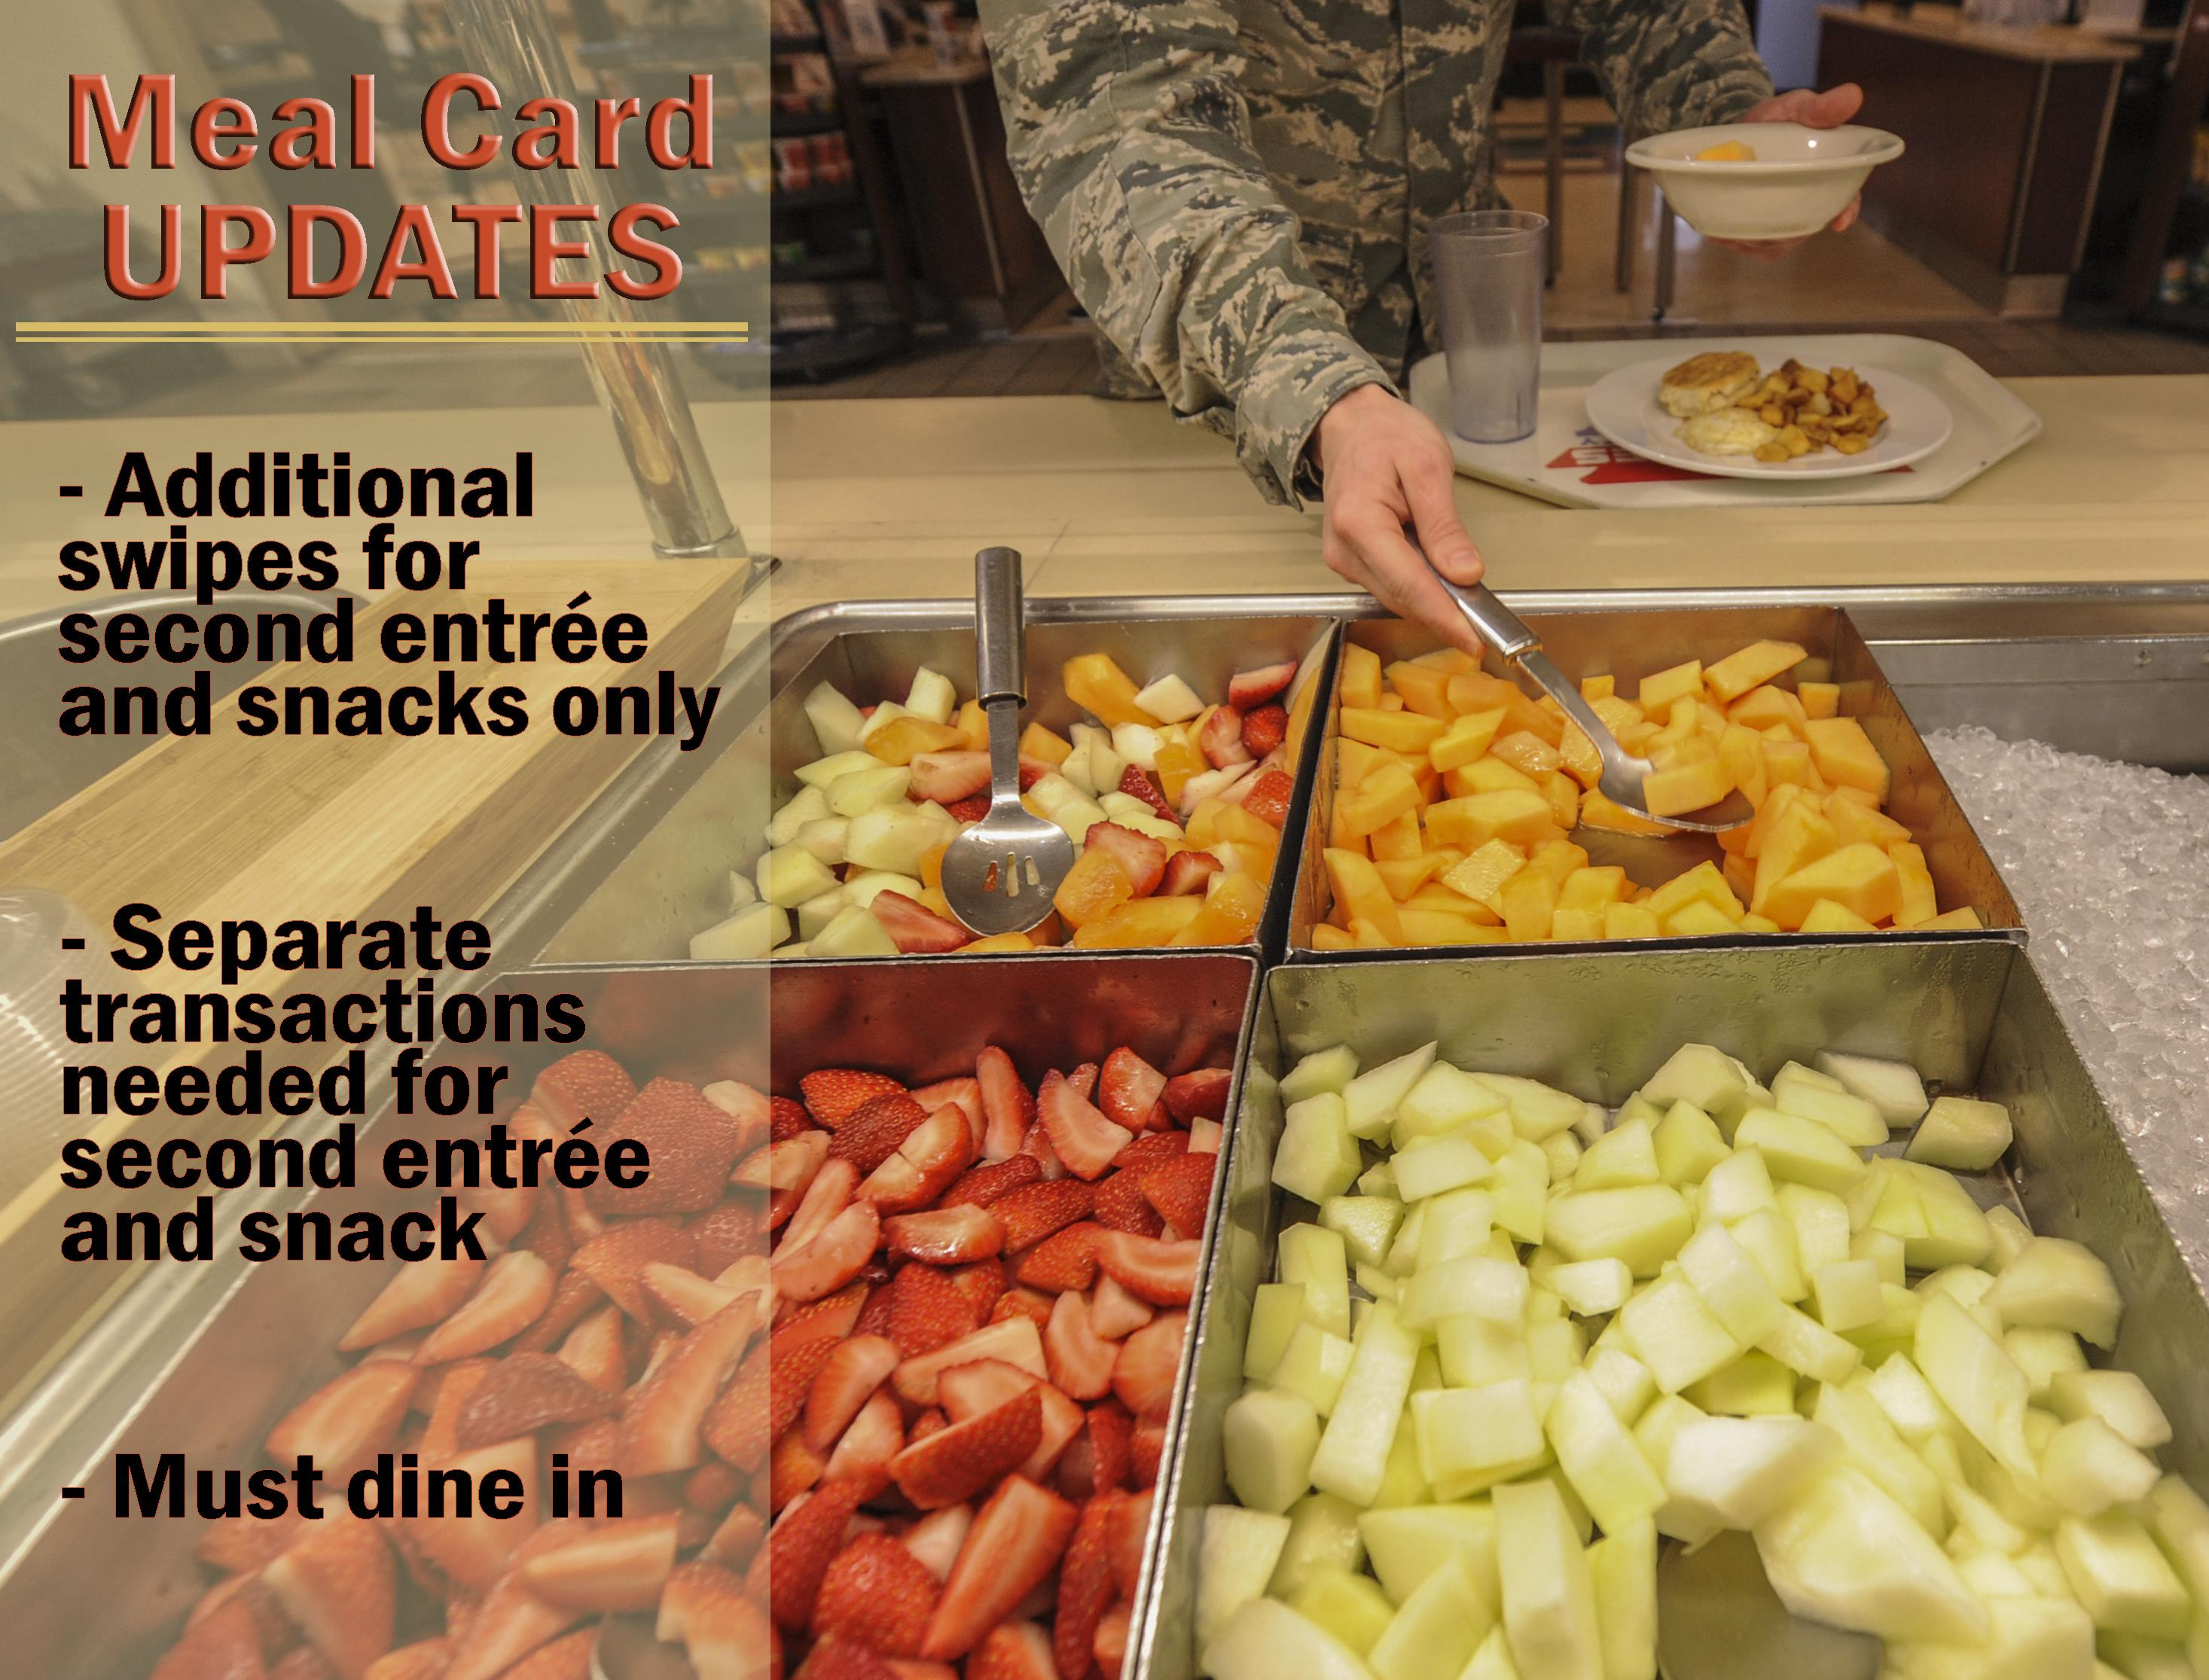 Little rock afb implements new meal card regulation little rock little rock afb implements new meal card regulation forumfinder Image collections